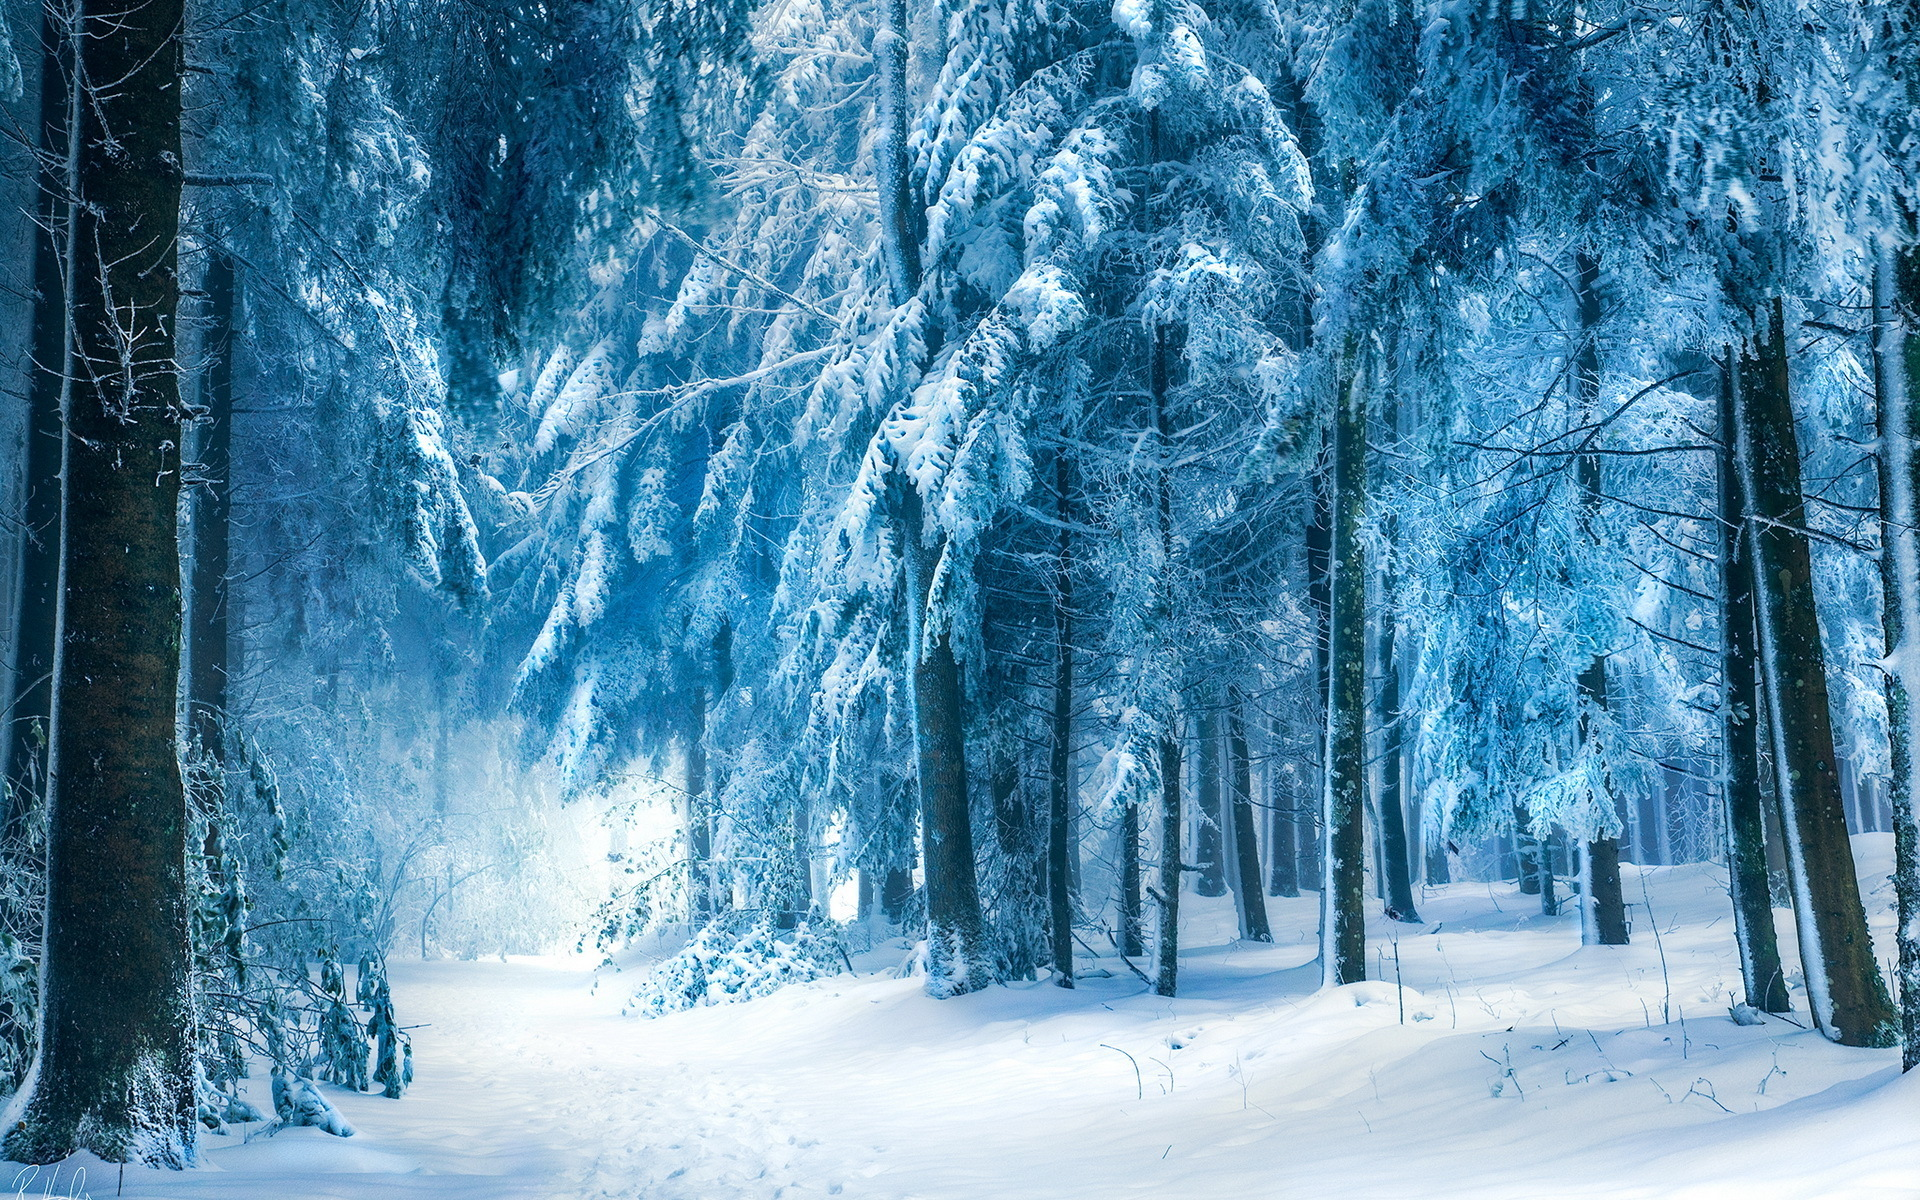 Winter Background Wallpapers WIN10 THEMES 1920x1200